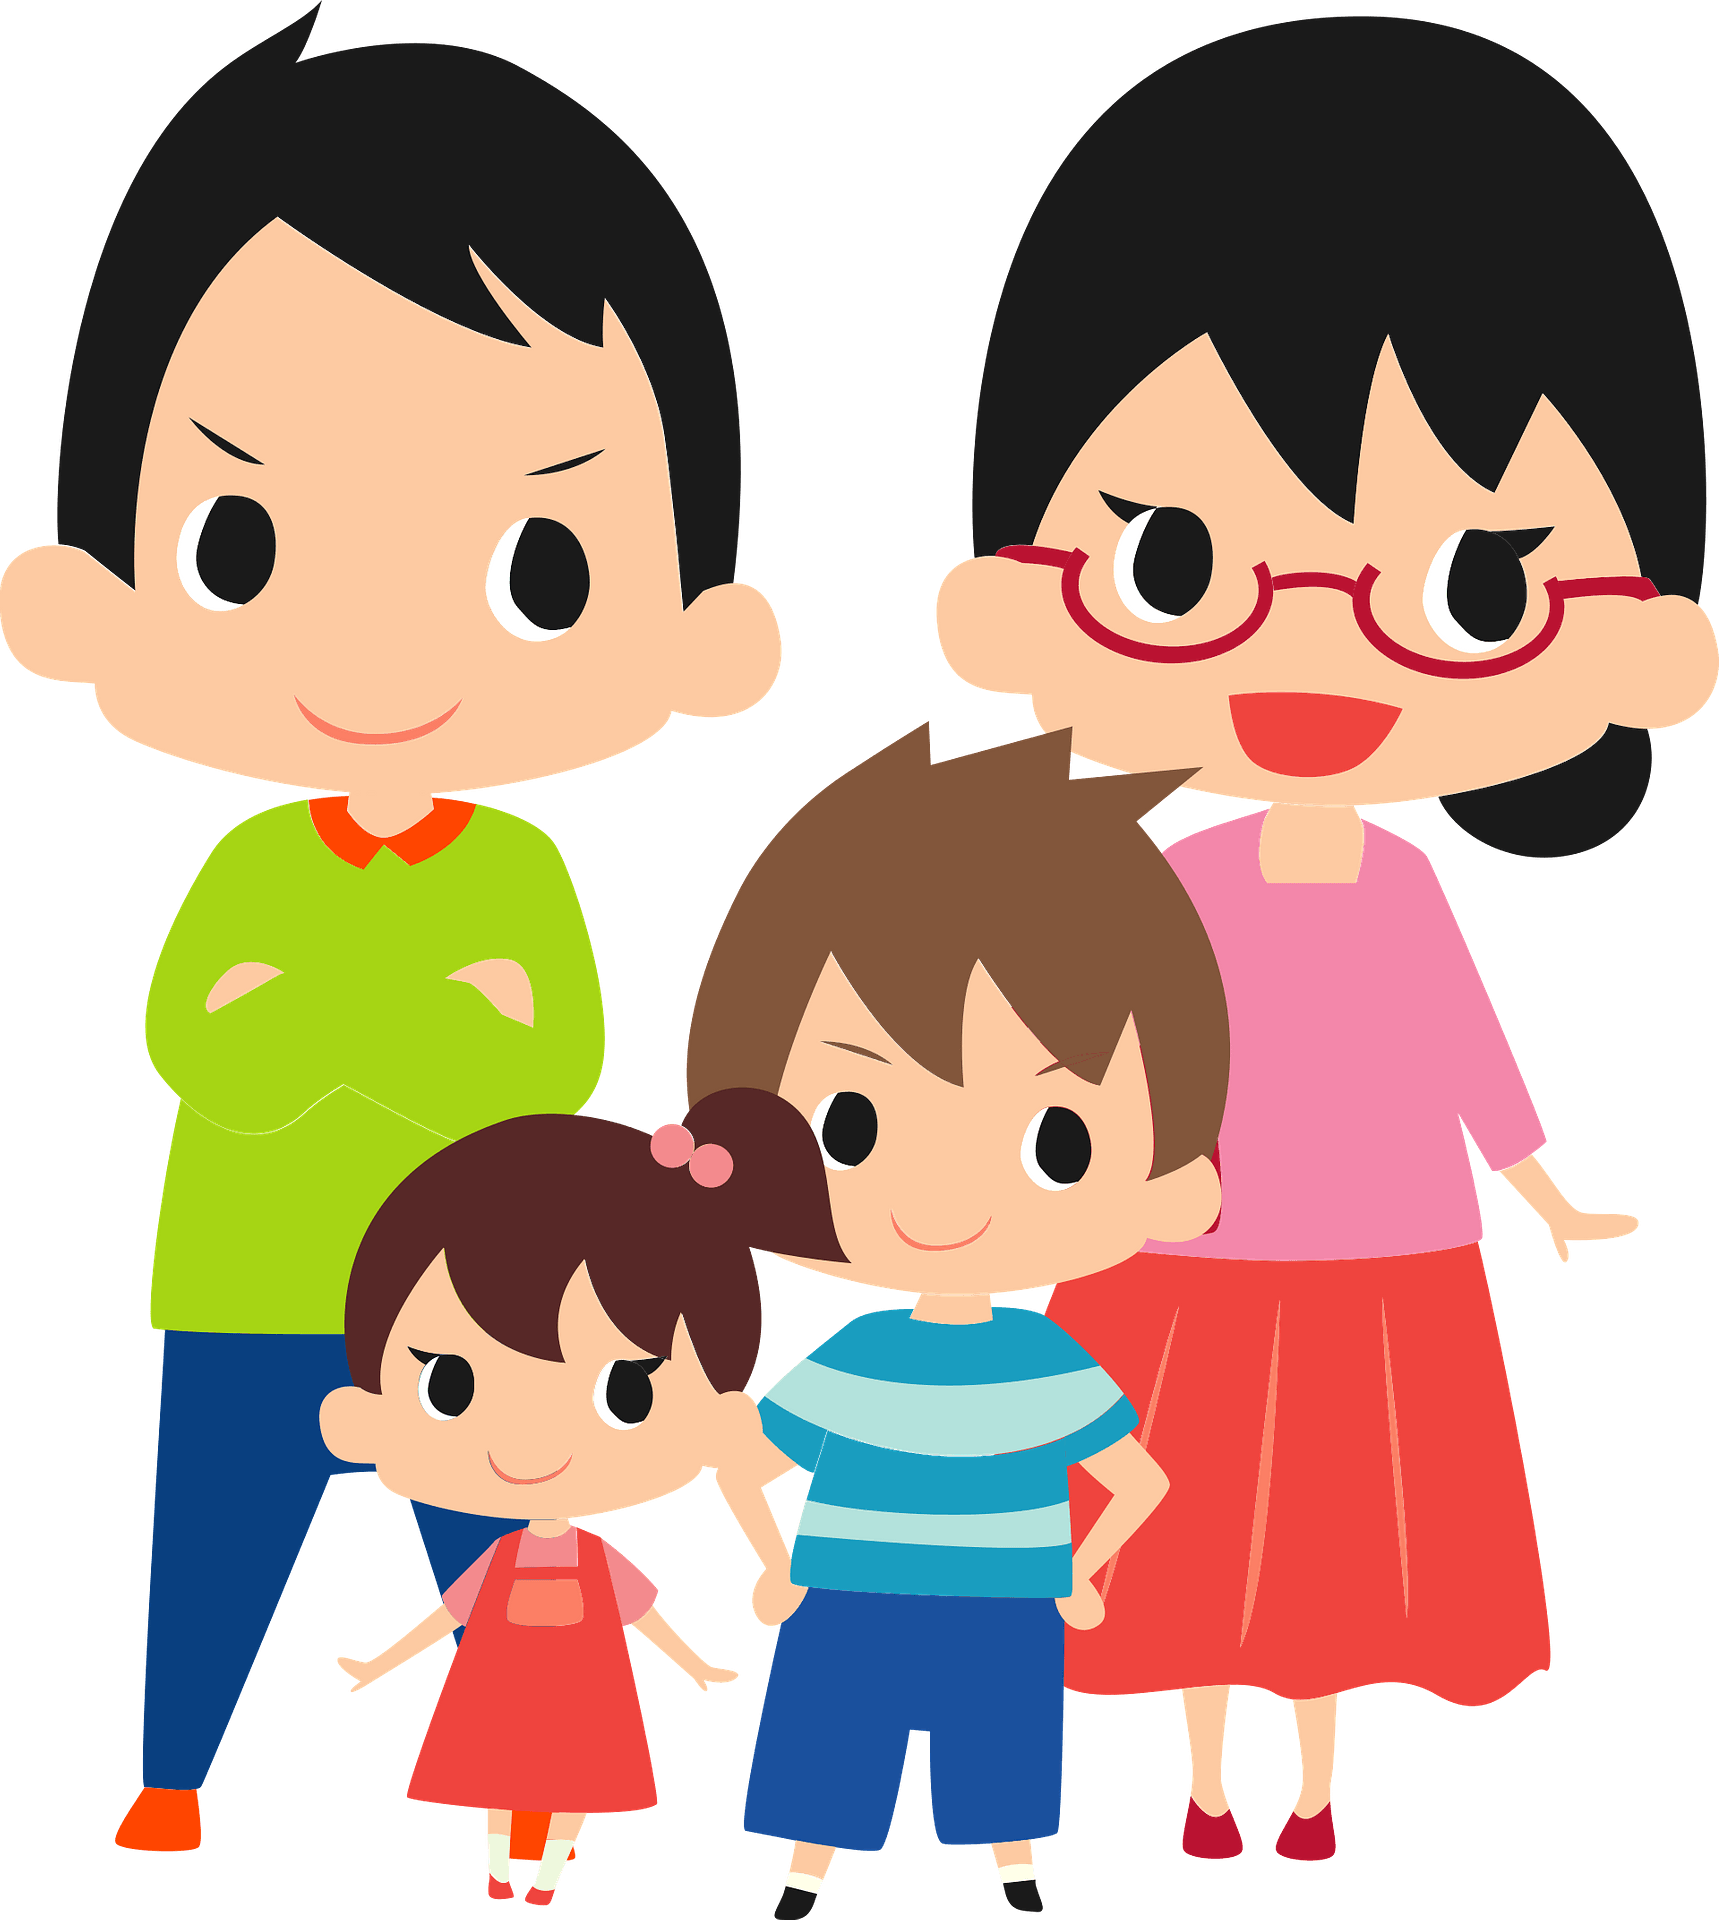 Free Family Images, Download Free Clip Art, Free Clip Art on Clipart Library